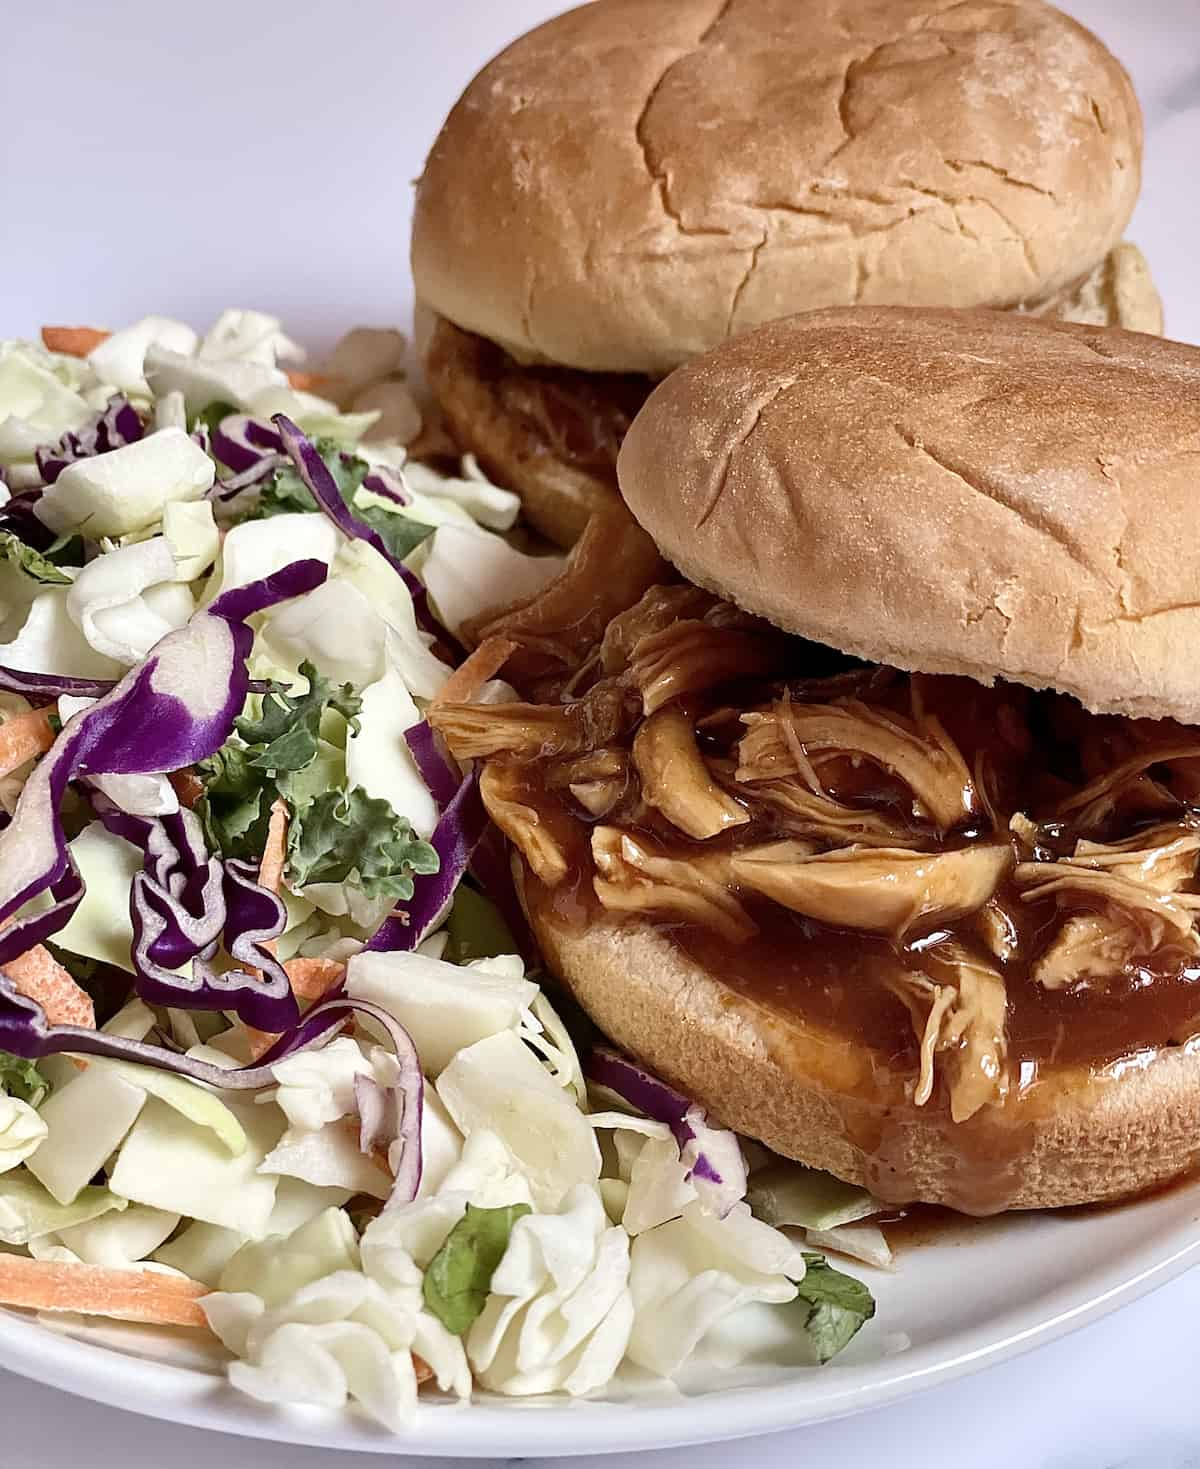 Instant Pot pulled barbecue chicken on sandwiches